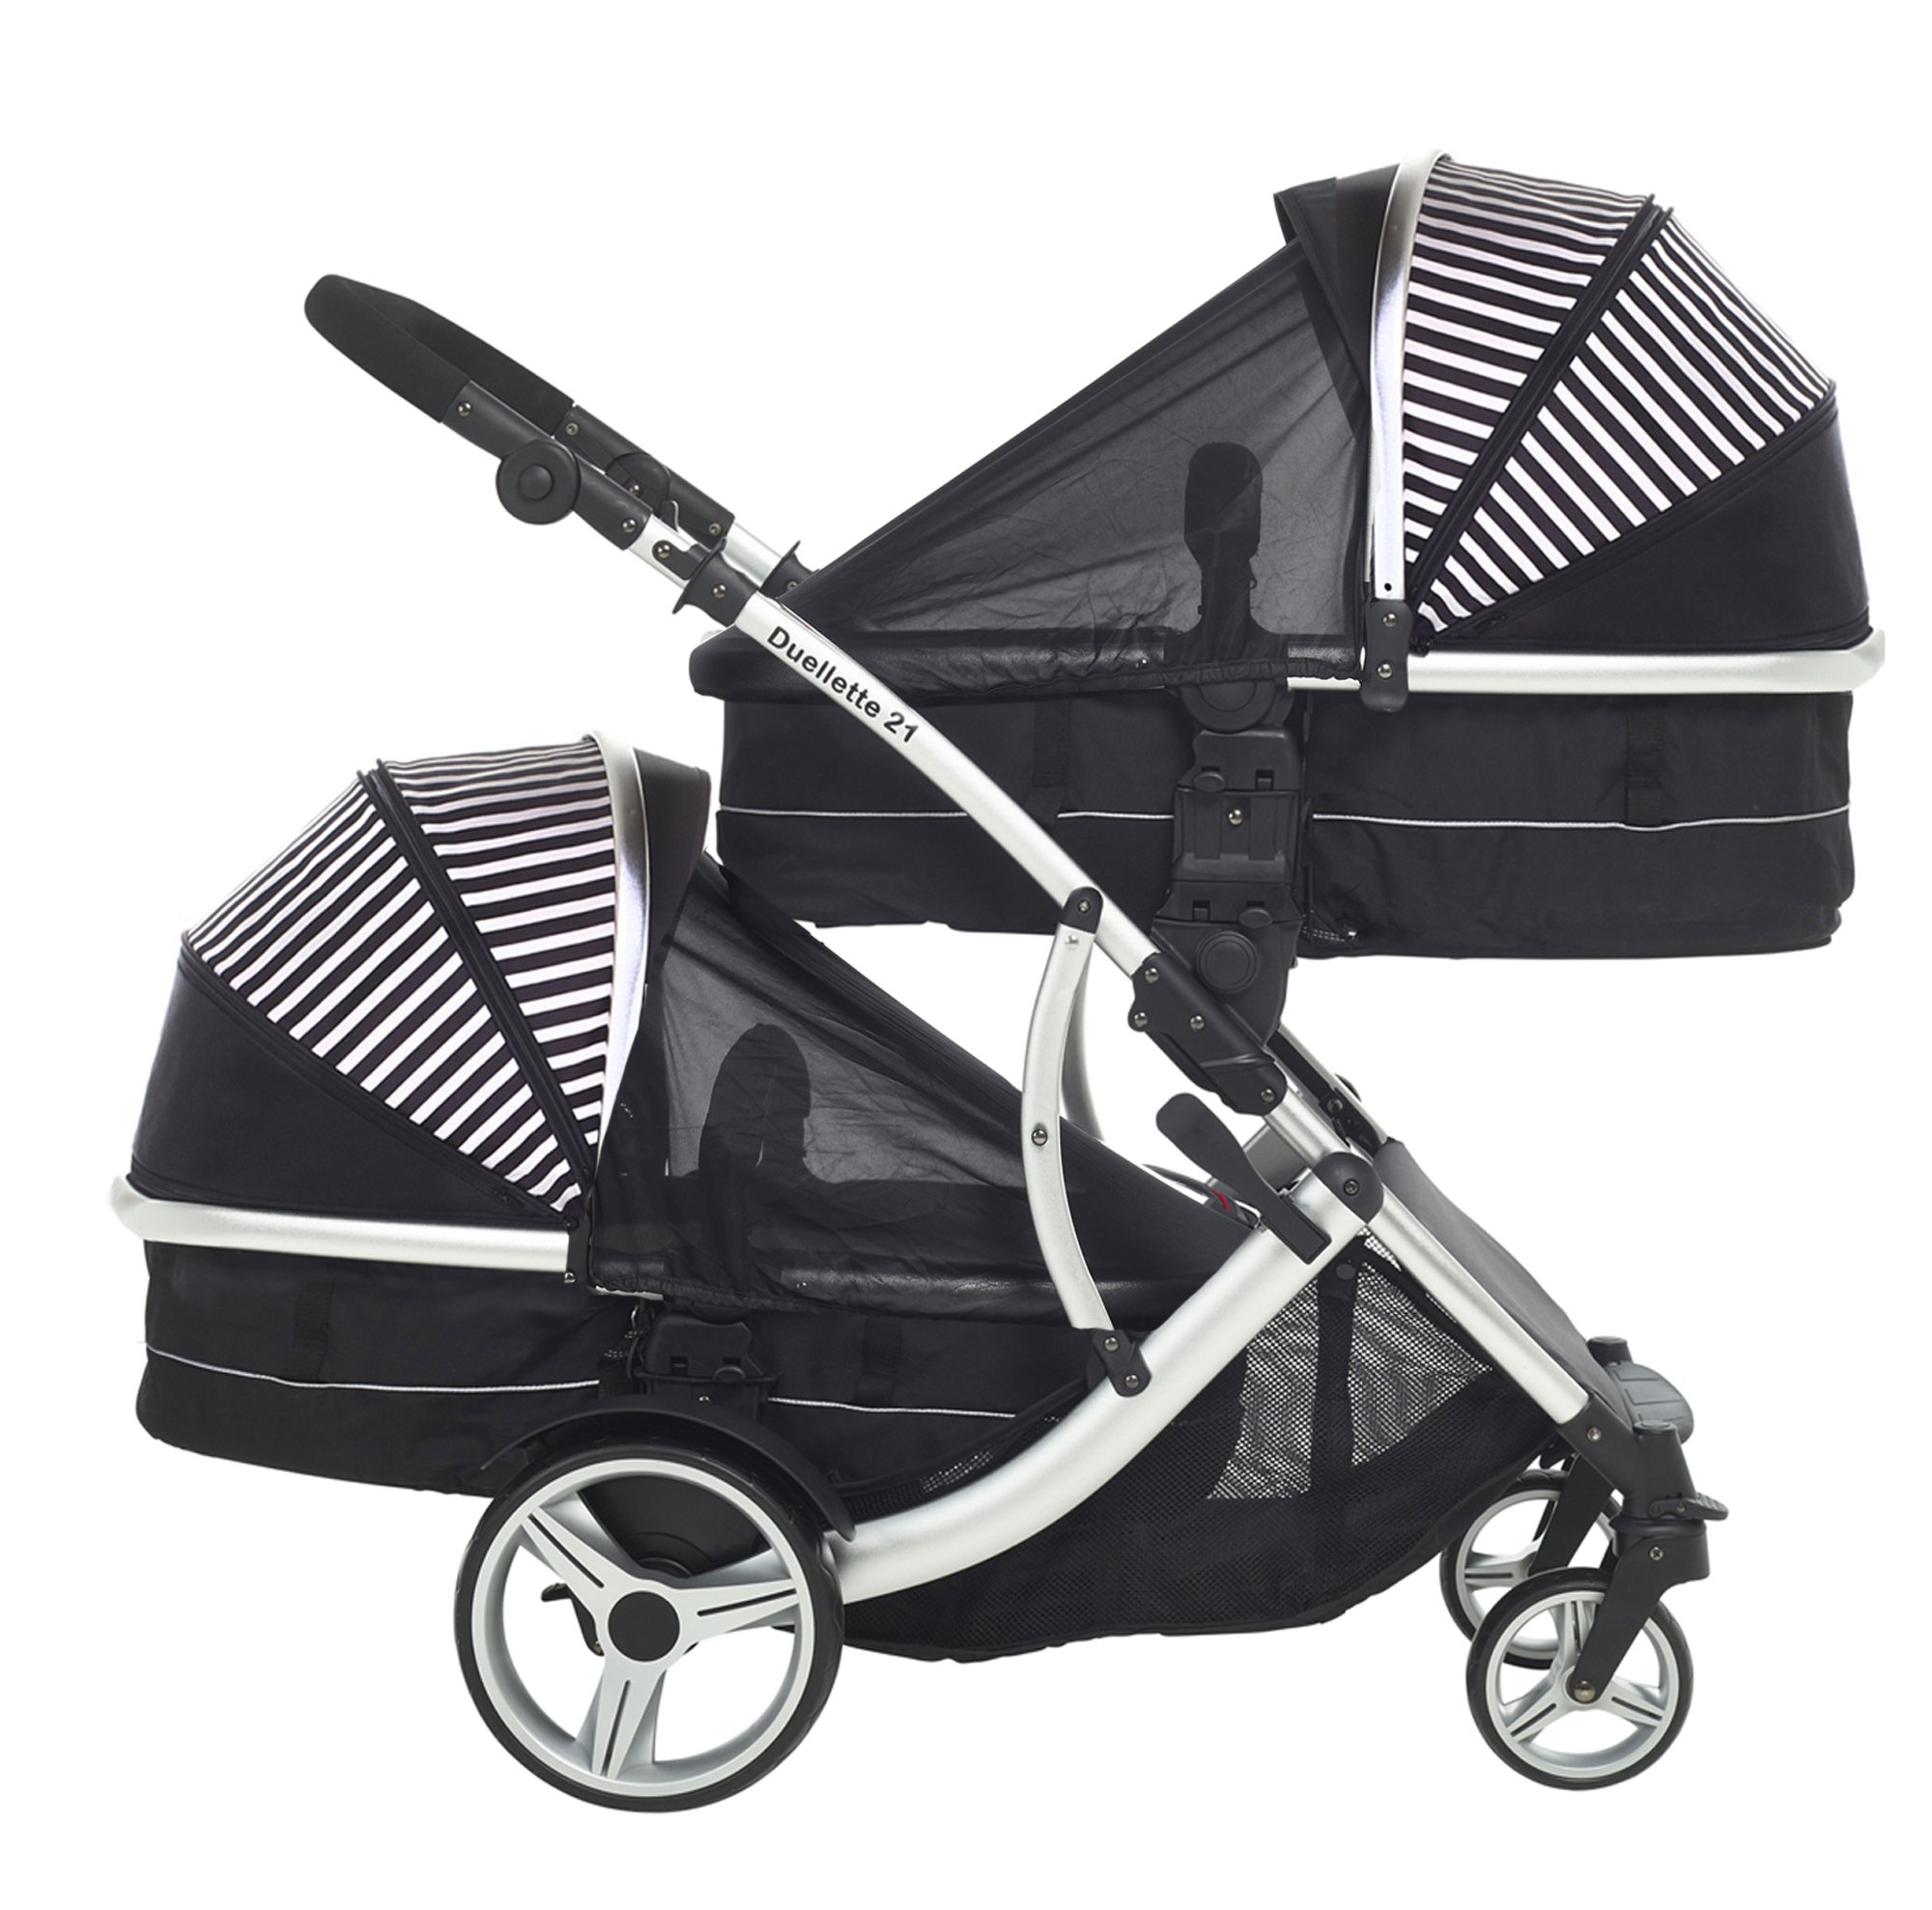 Kids Kargo Duellette Combi Tandem Double Twin pushchair (Oxford Stripe) for Newborn Twins Kids Kargo Fully safety tested Compatible with car seats; Kids Kargo, Britax Baby safe or Maxi Cosi adaptors. Versatile. Suitable for Newborn Twins:  carrycots have mattress and soft lining, which zip off. Remove lining and lid. 3